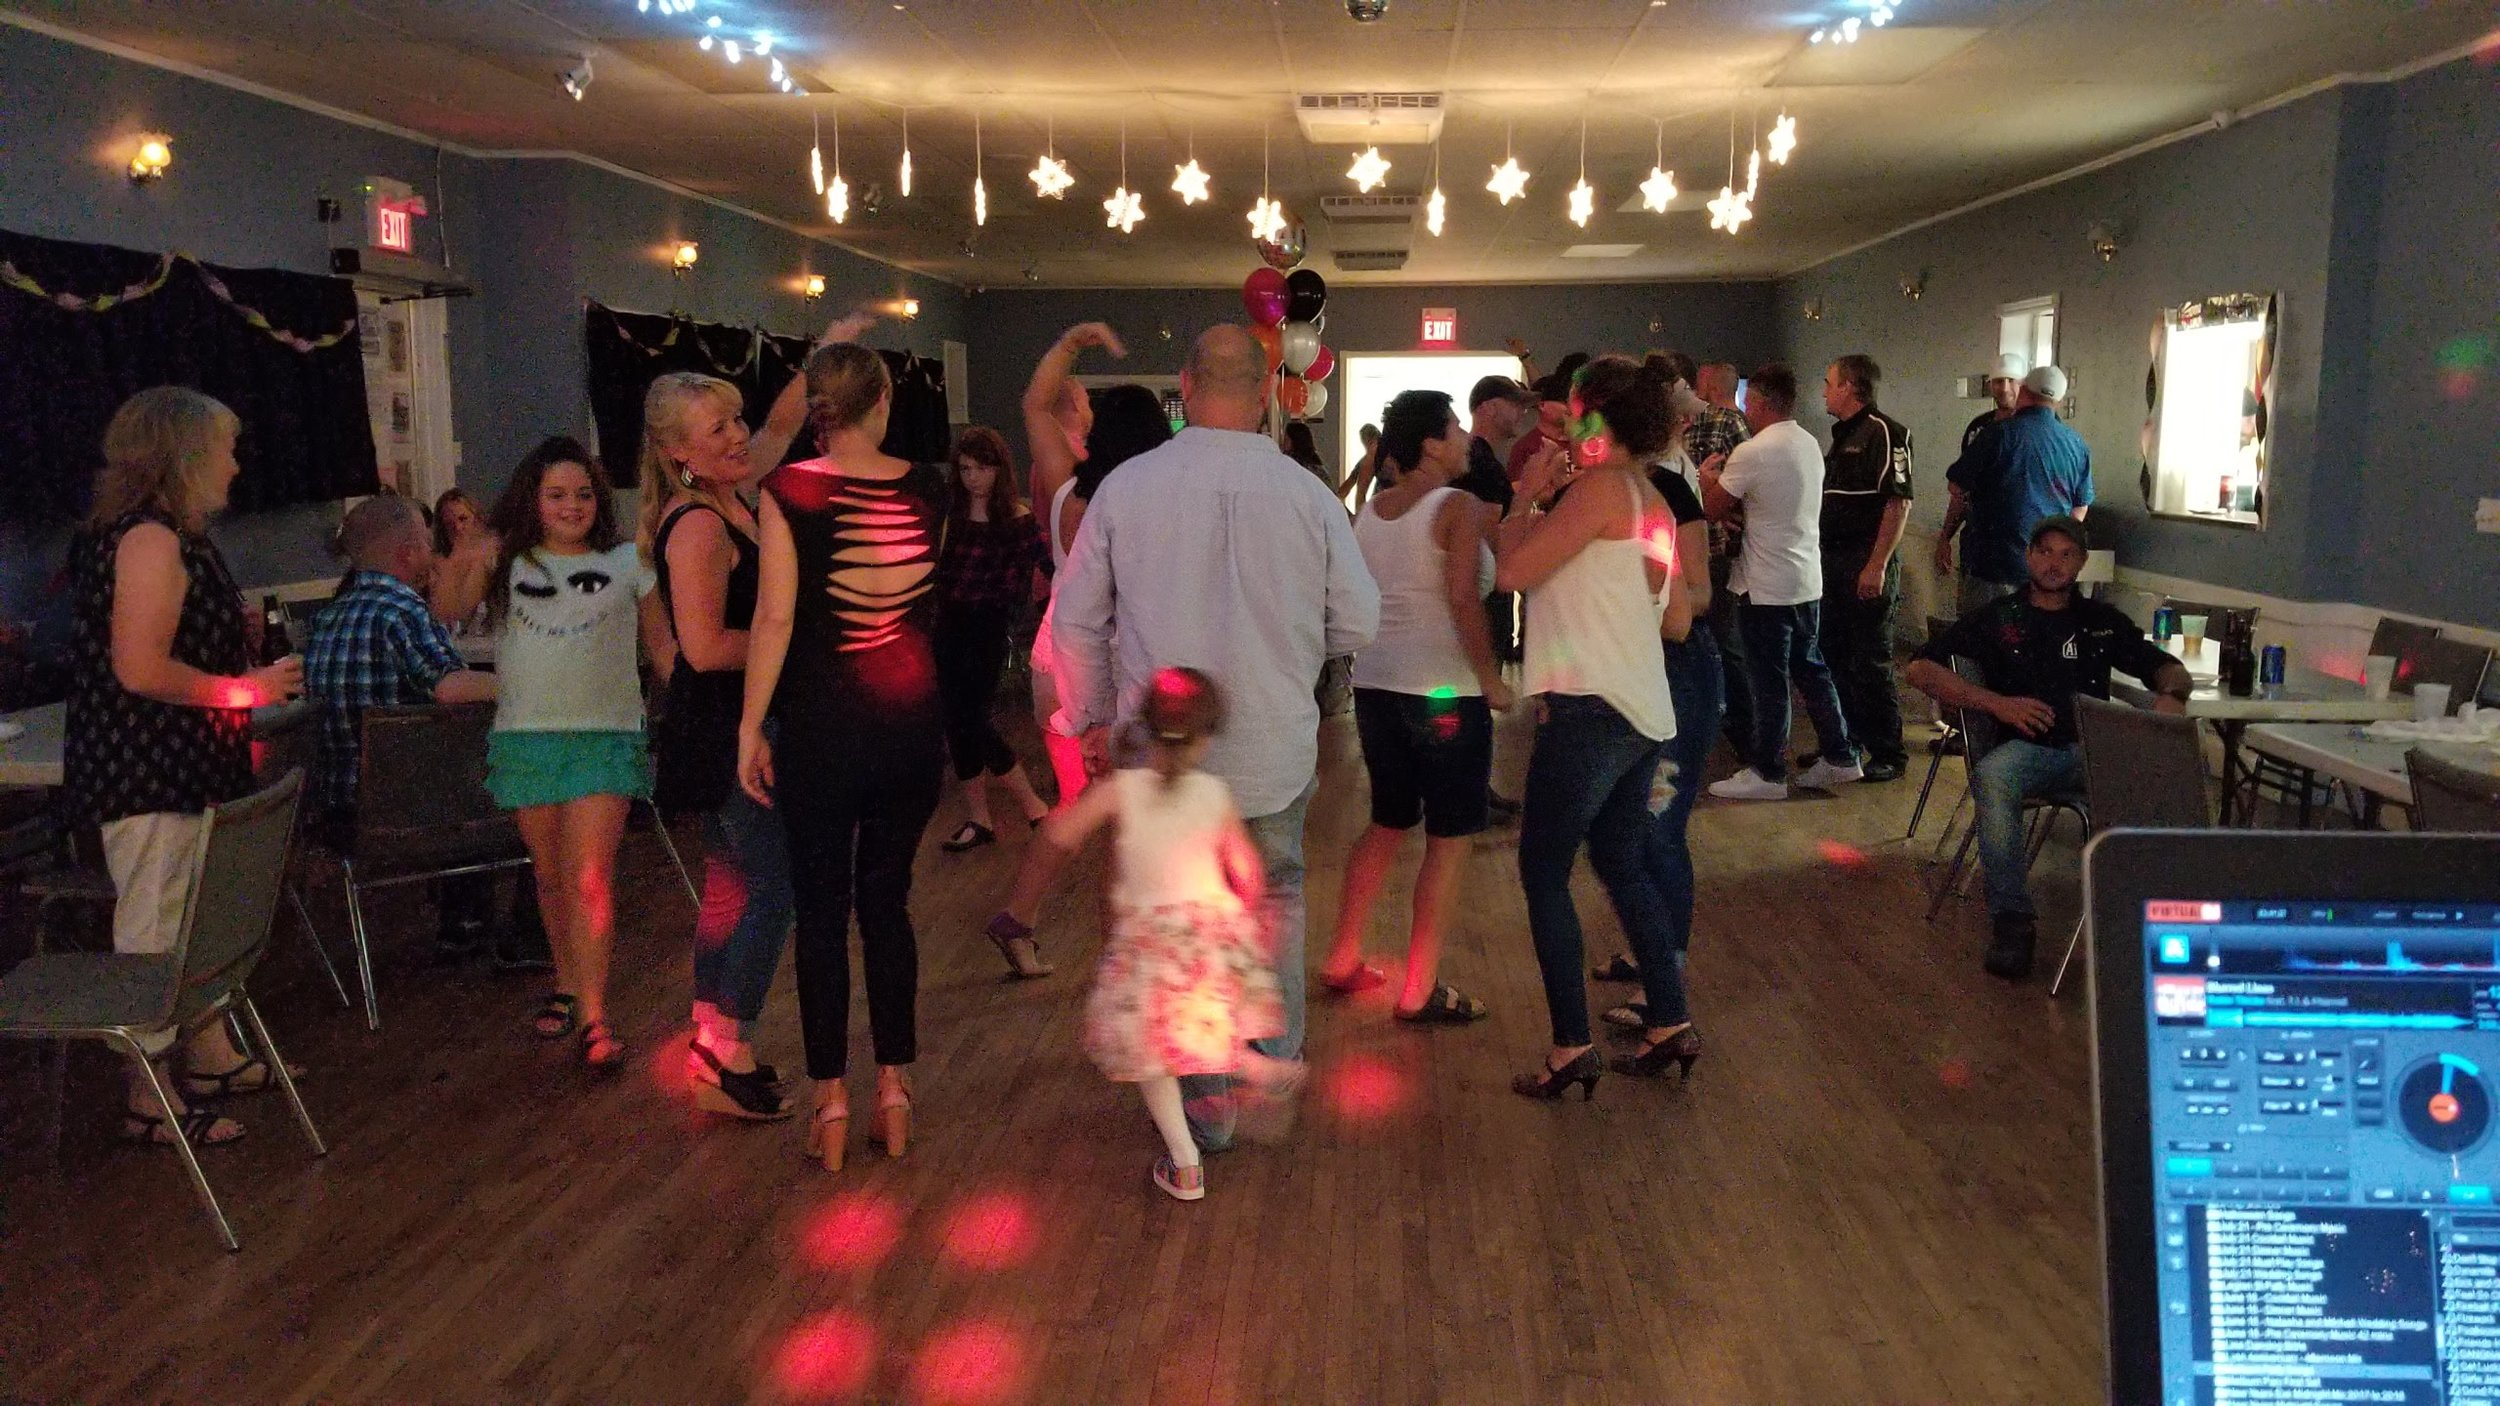 grafton_legion_birthday_party_dancing.jpg